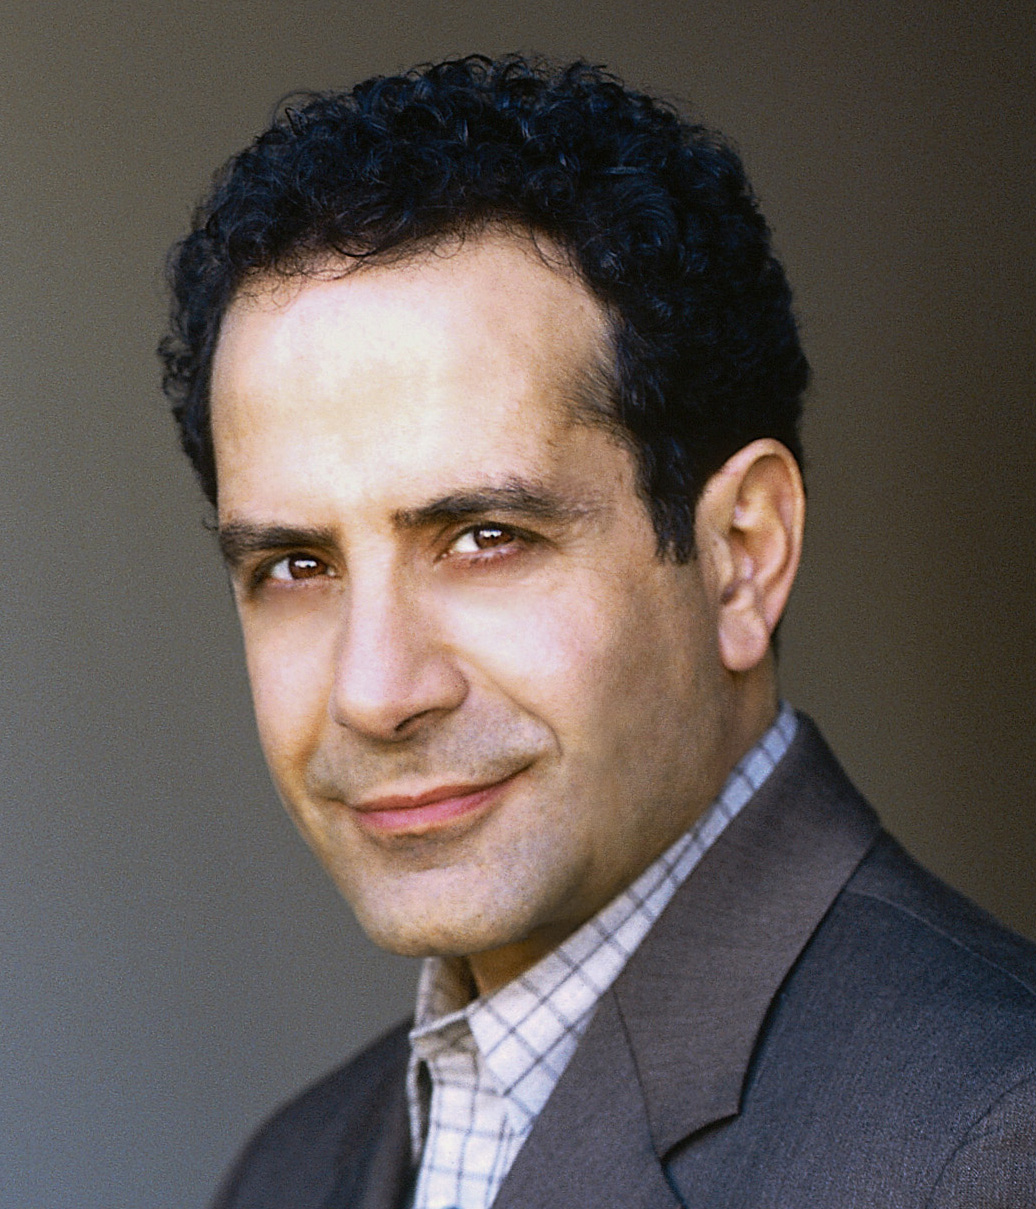 tony shalhoub 2017tony shalhoub 2016, tony shalhoub height, tony shalhoub facebook, tony shalhoub films, tony shalhoub twitter, tony shalhoub 2017, tony shalhoub antonio scarpacci, tony shalhoub and traylor howard, tony shalhoub young, tony shalhoub brooke adams, tony shalhoub filmography, tony shalhoub the man who wasn't there, tony shalhoub 1408, tony shalhoub mib 2, tony shalhoub, tony shalhoub net worth, tony shalhoub imdb, tony shalhoub wife, tony shalhoub monk, tony shalhoub wings